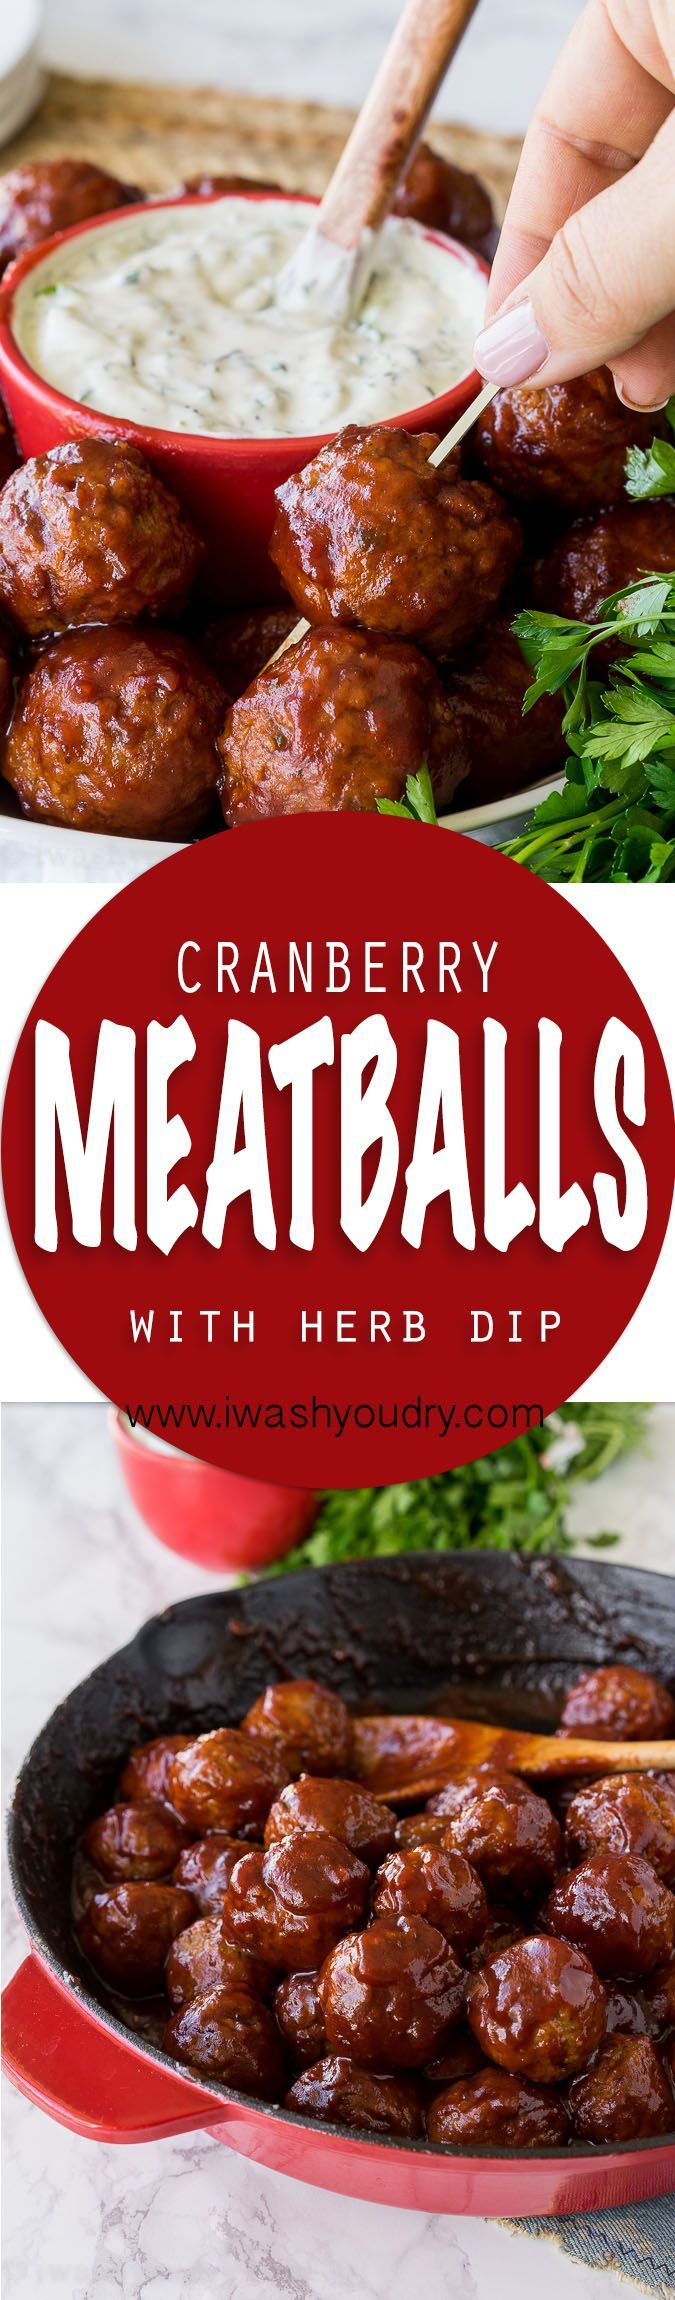 The 25+ best Cranberry meatballs ideas on Pinterest | Holiday ...